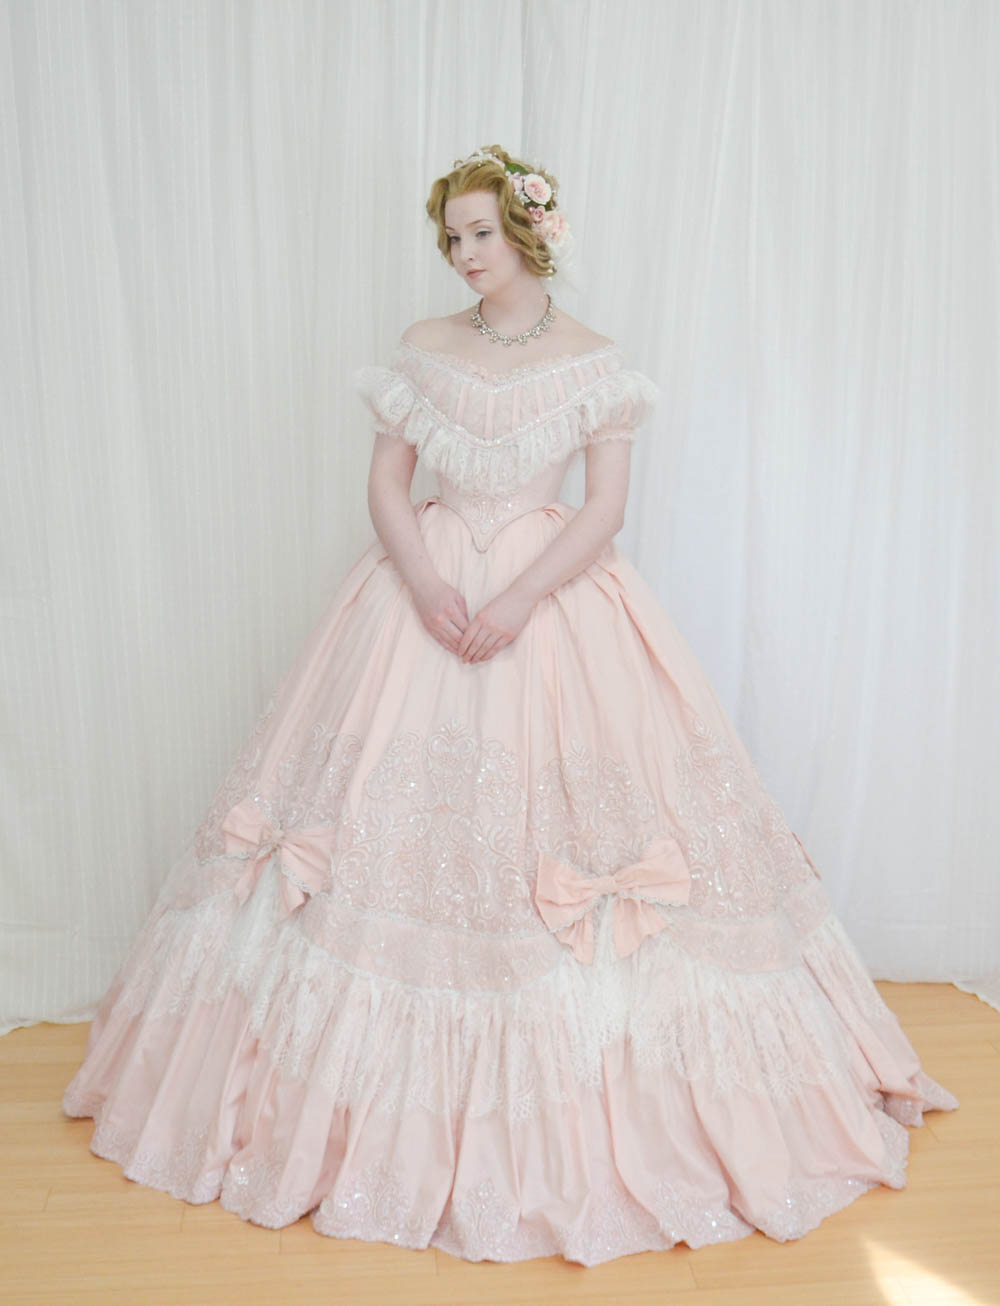 Forced to wear a ball gown - Angela Clayton Evening Gown 1860 7872